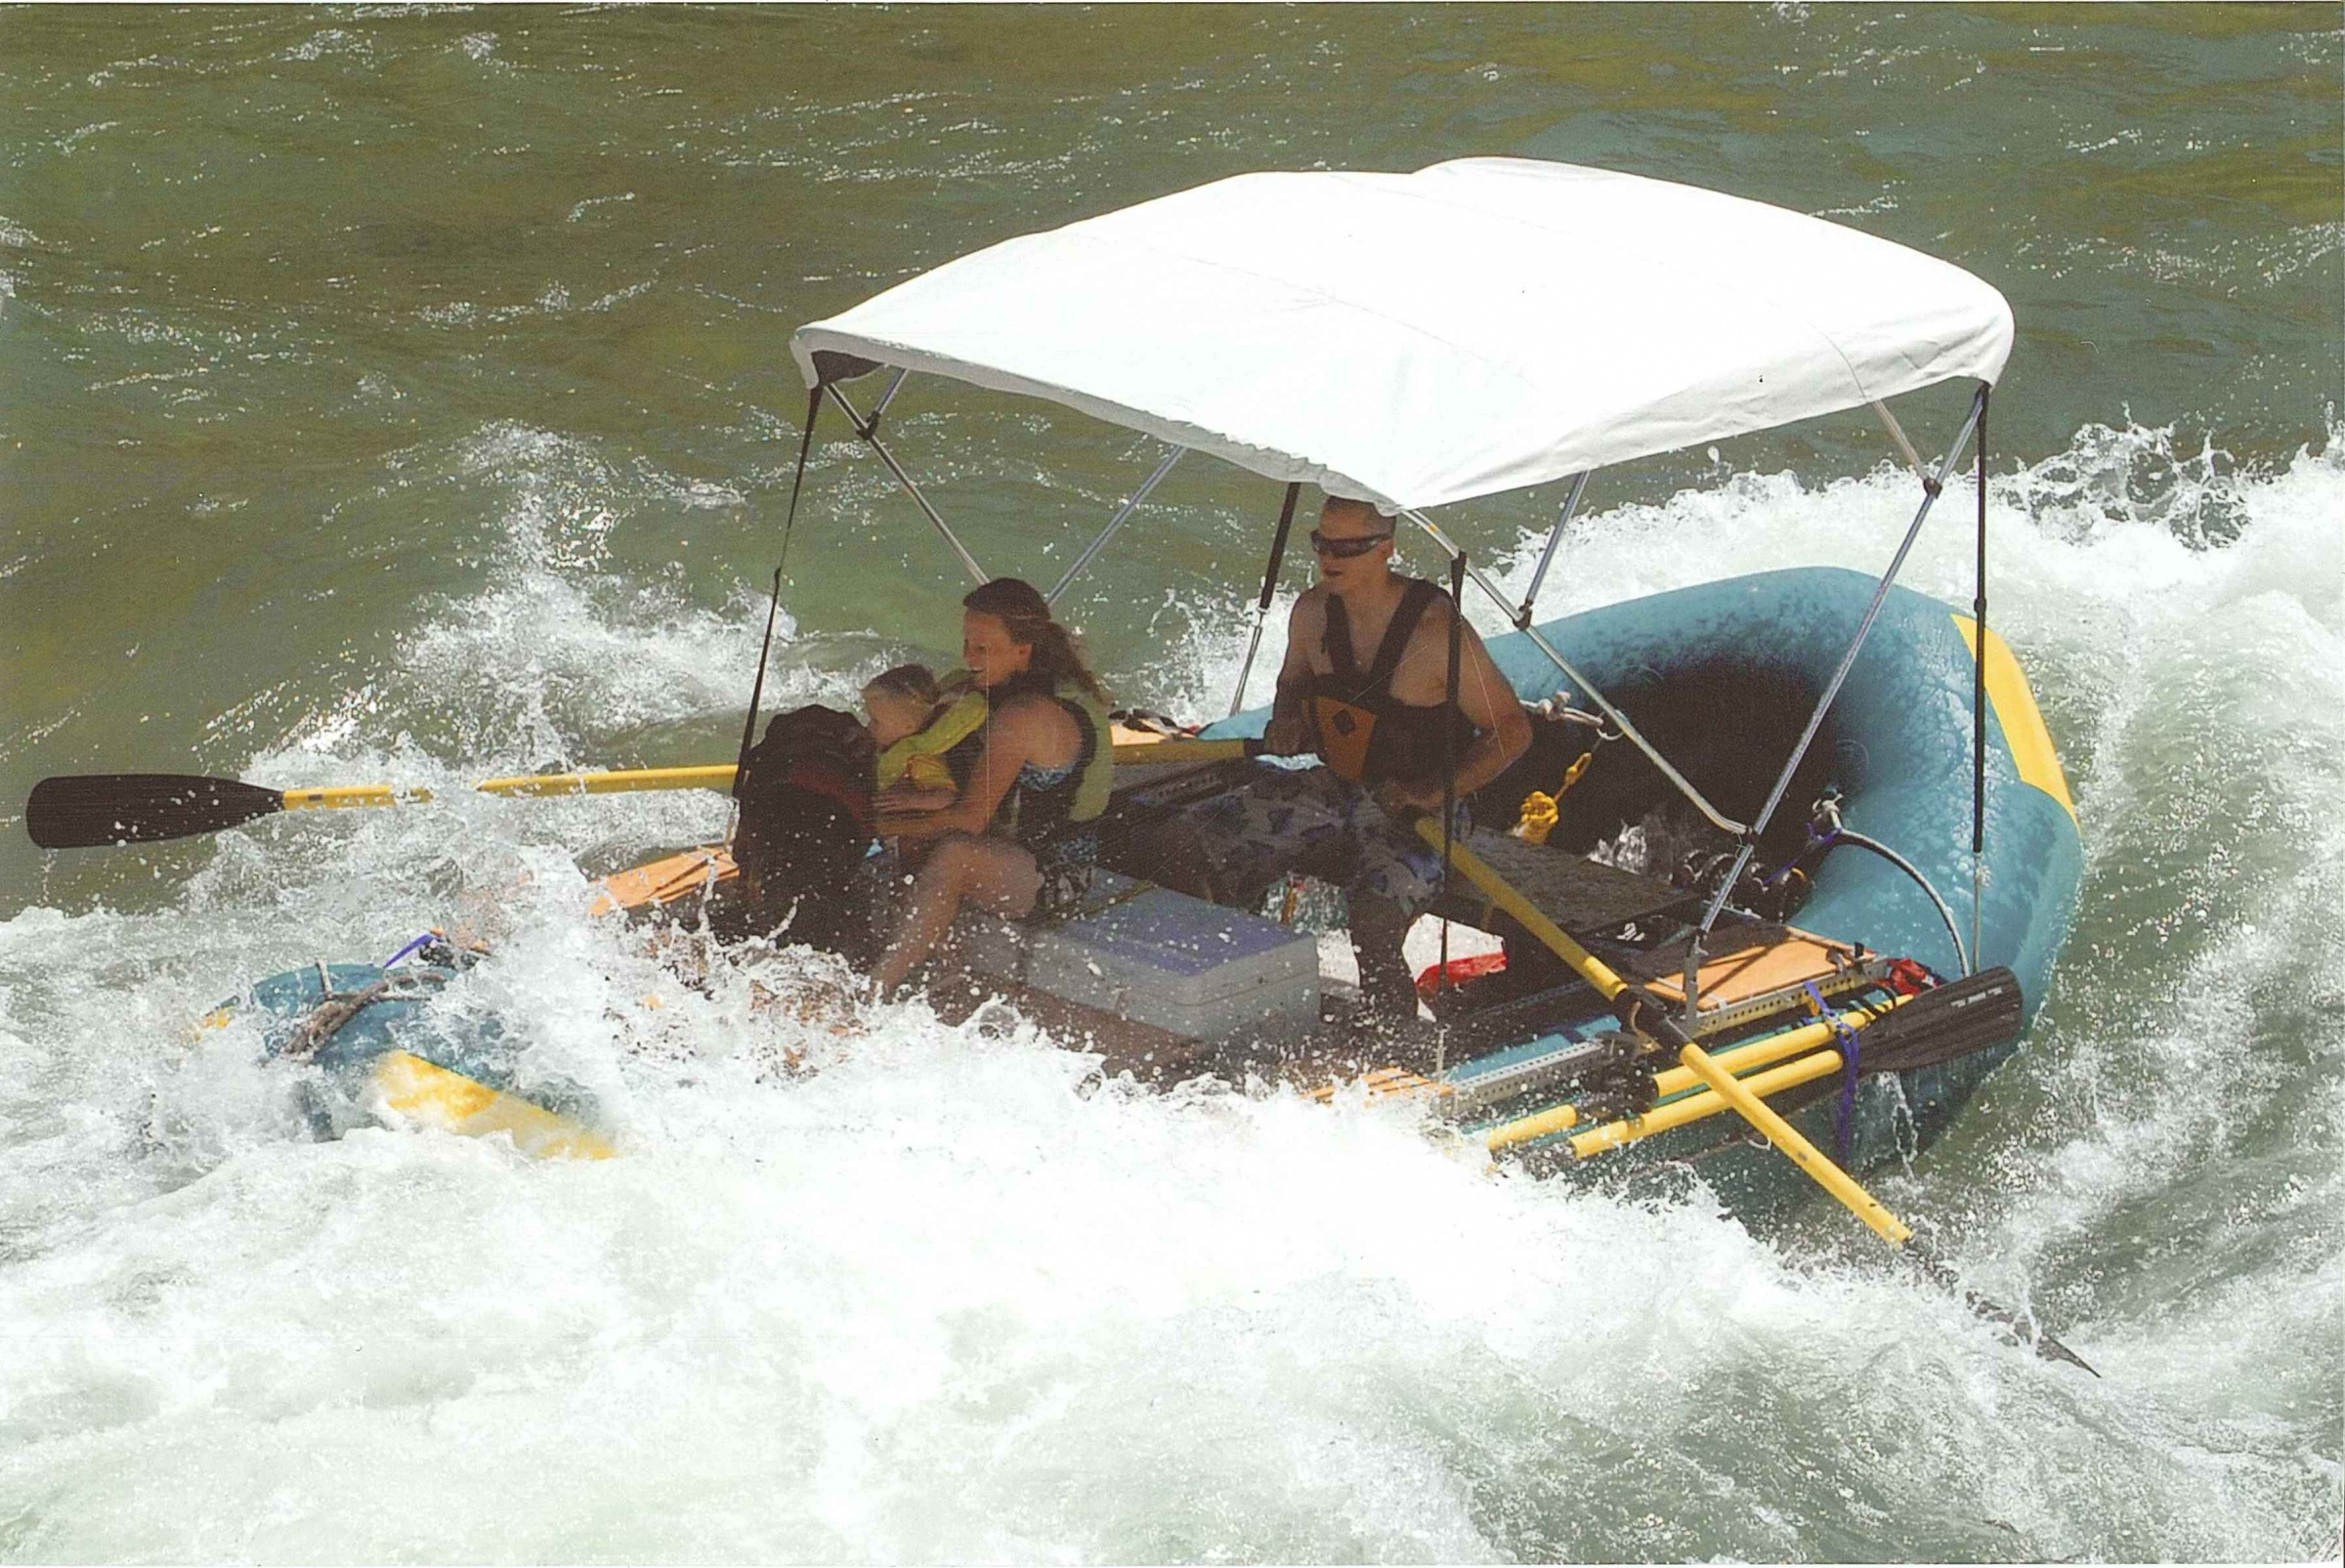 Click image for larger version  Name:Snake River 3.jpg Views:105 Size:1.24 MB ID:5125